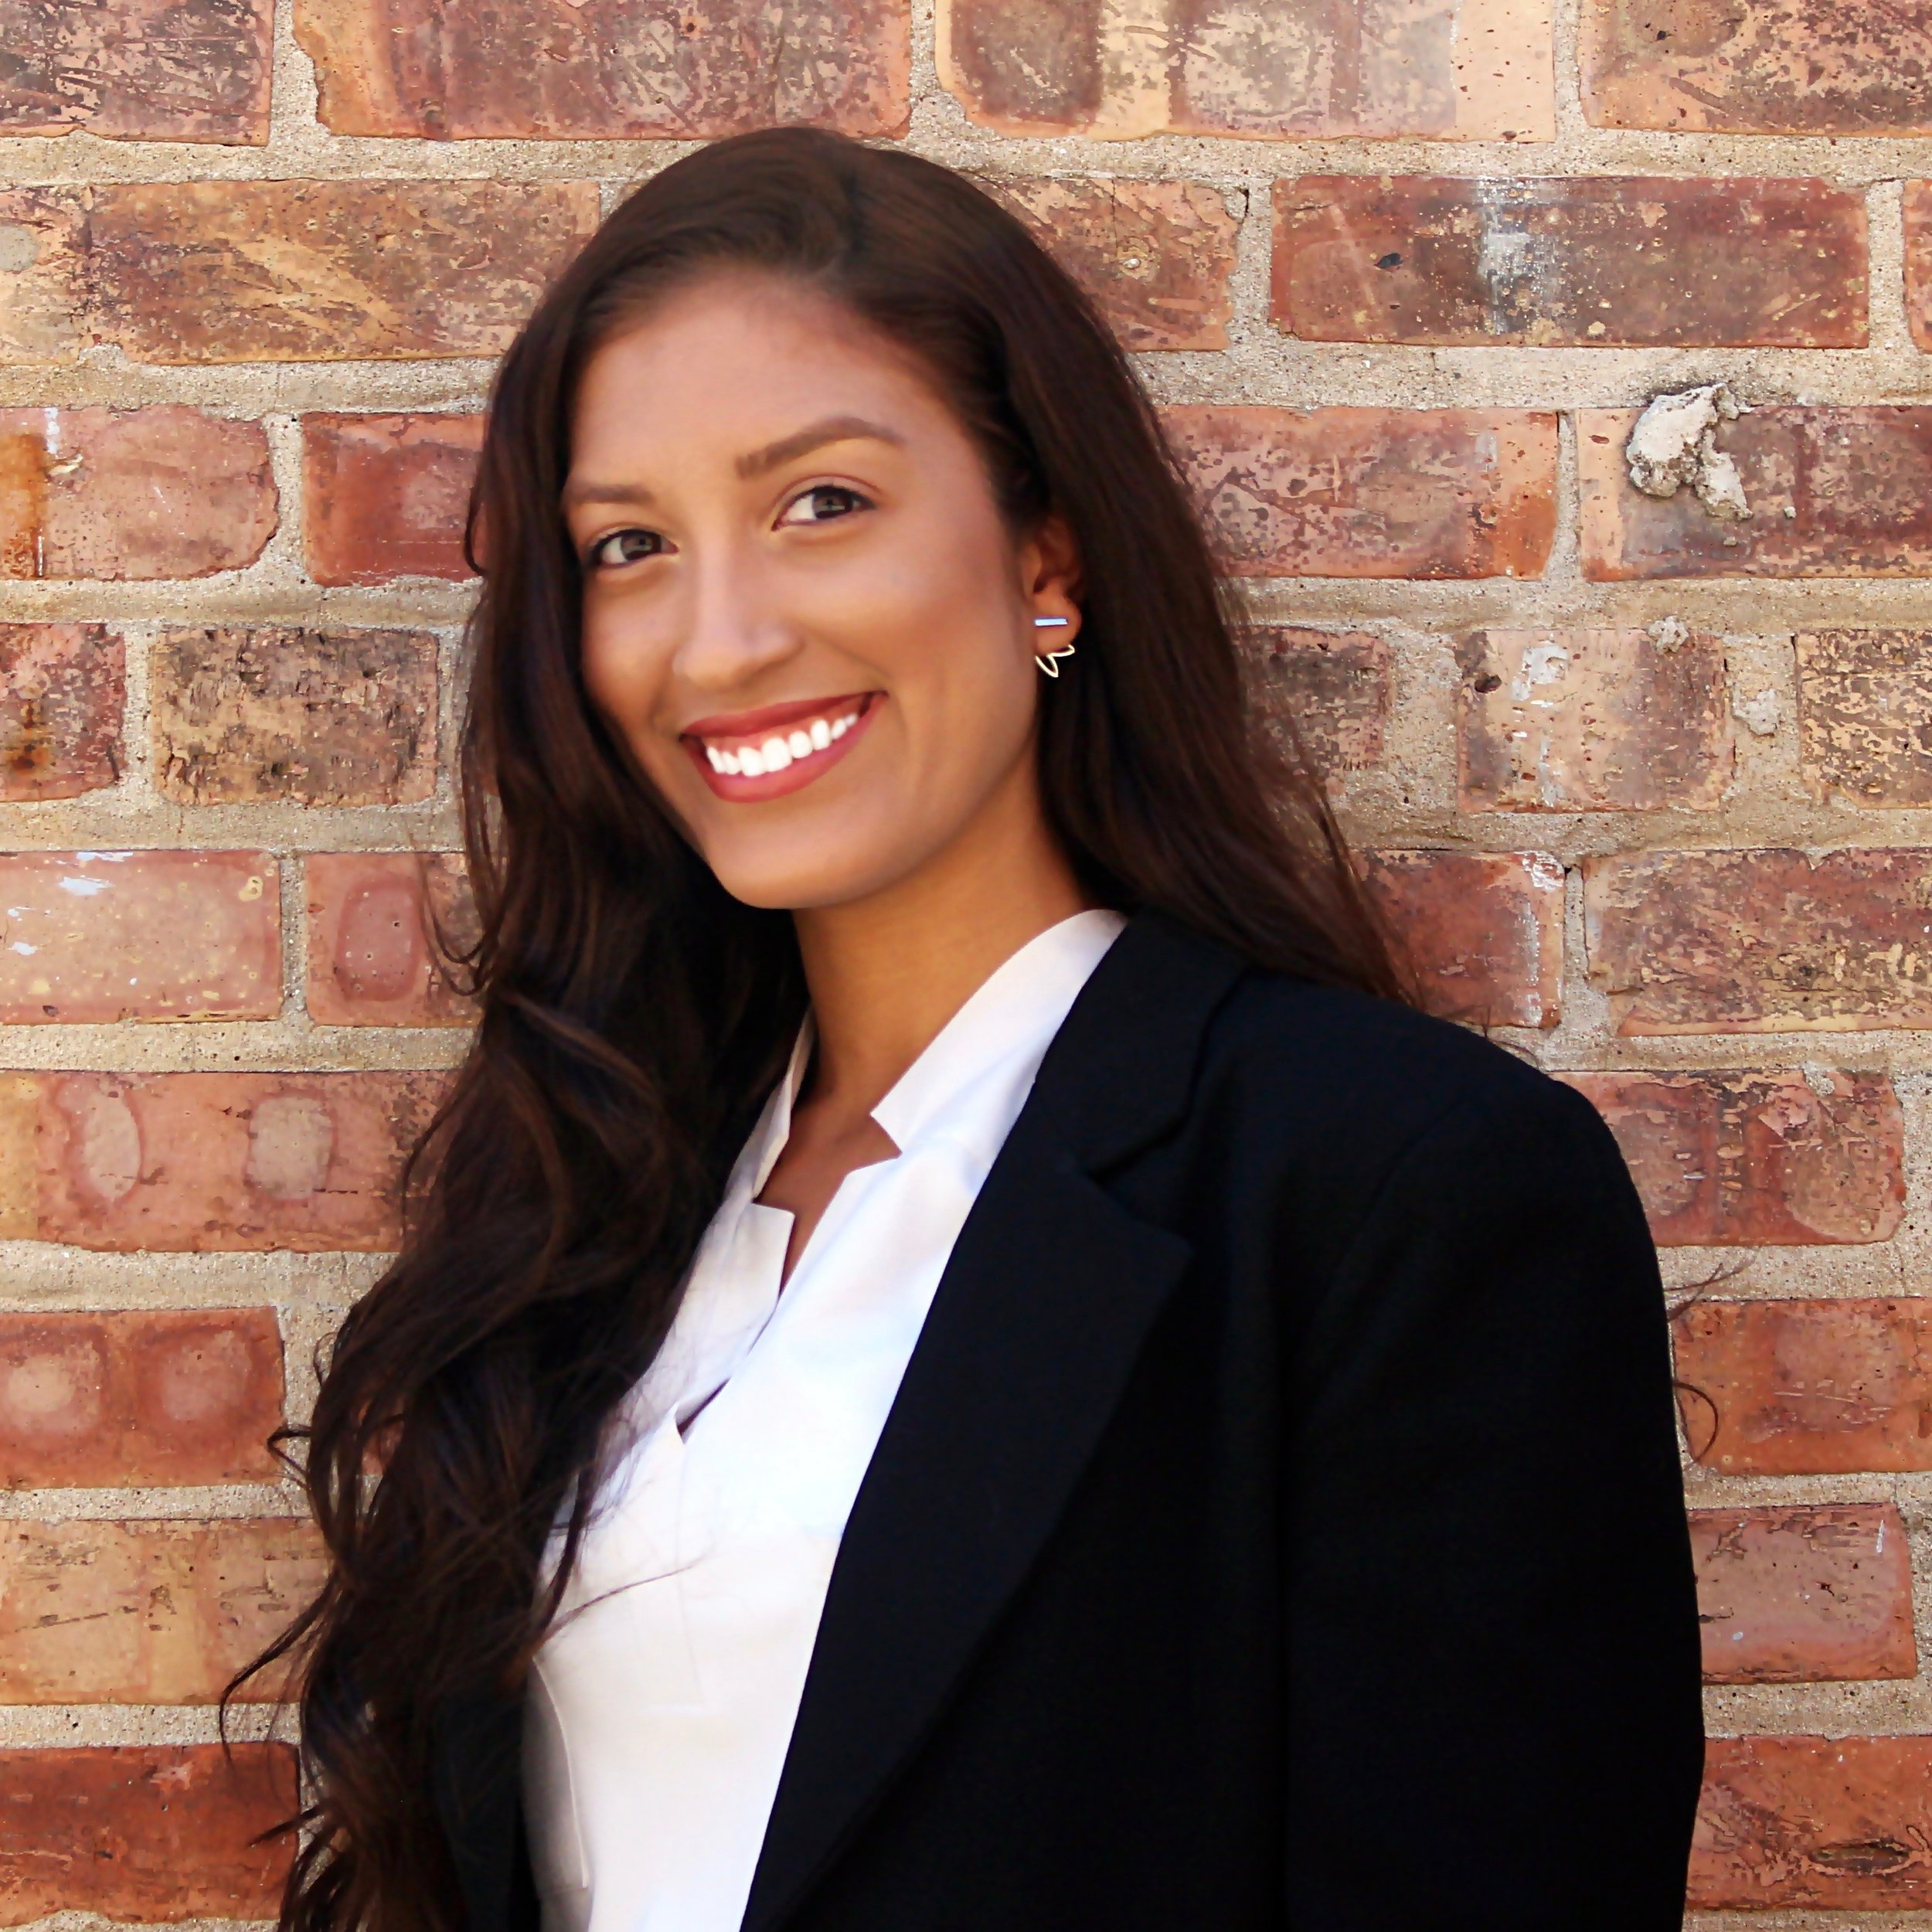 Bianka Shavers-Rivera - Immigration Case ManagerBianka received her bachelor's degree in International Relations-History and Japanese from Wellesley College in the spring of 2017. She now helps our broad spectrum of clients navigate the immigration system.